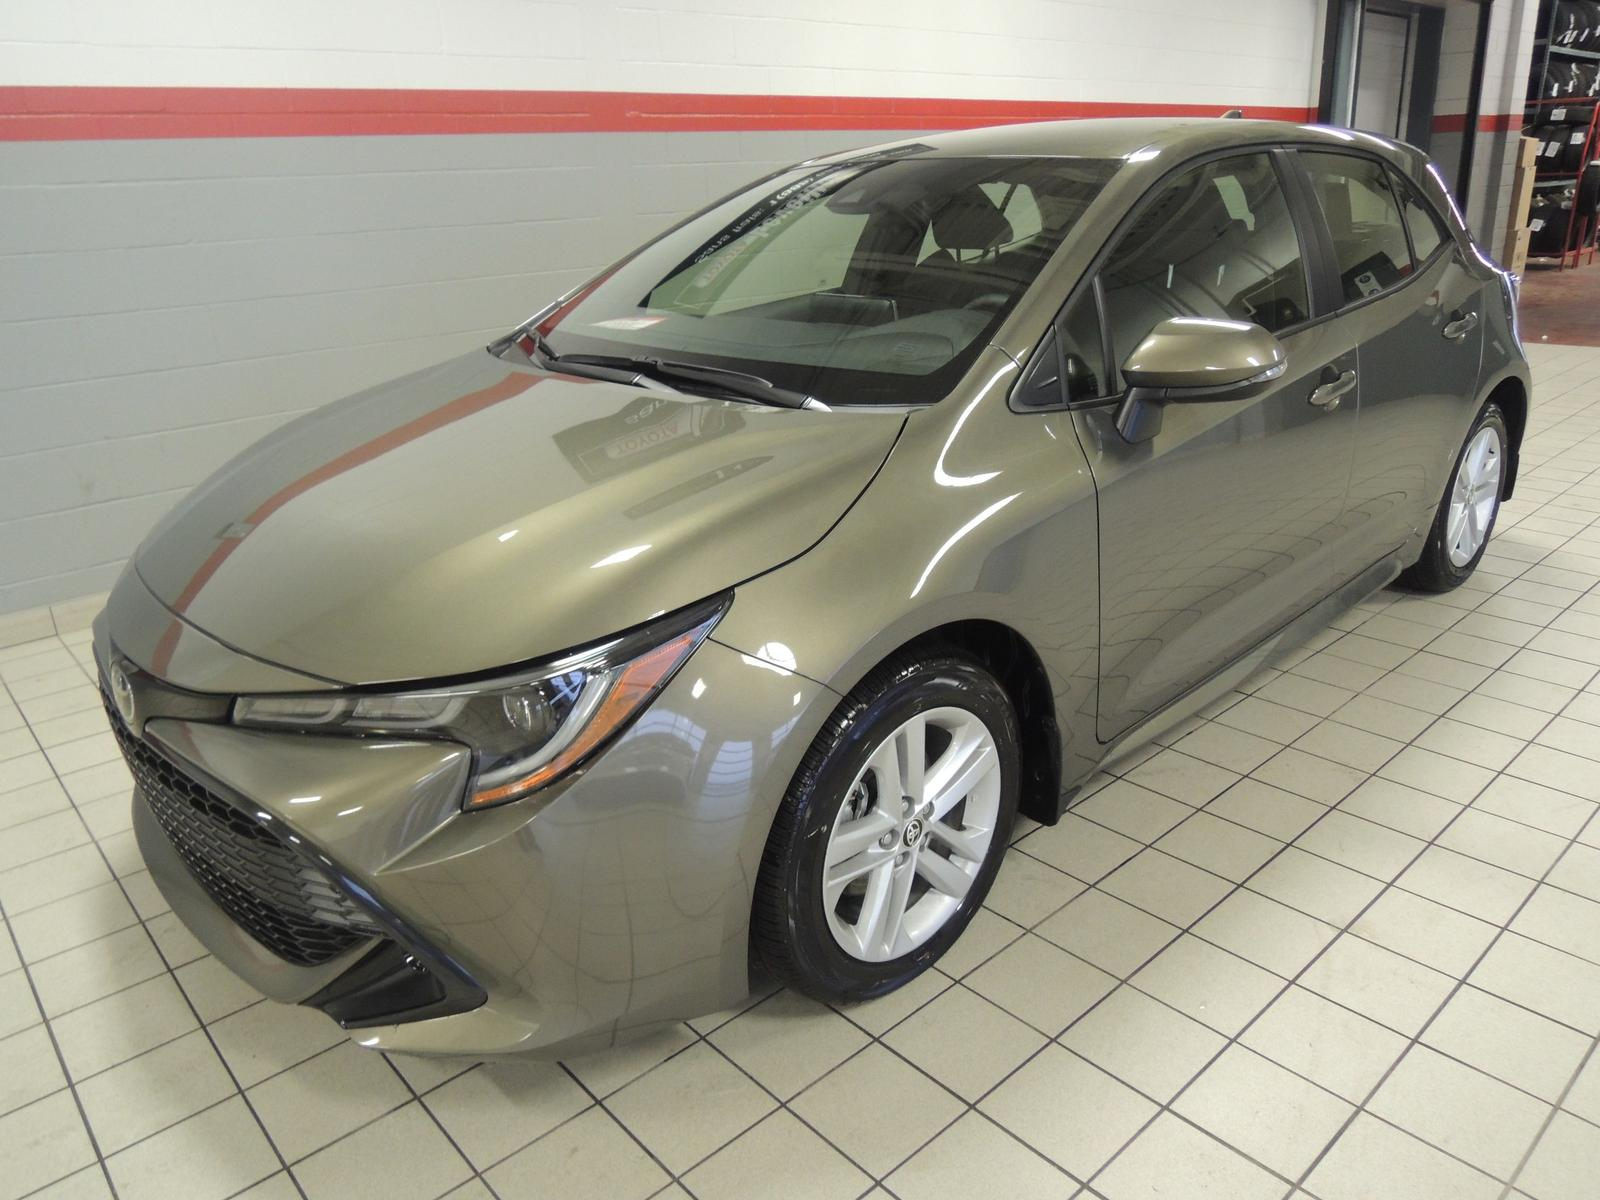 Used toyota Corolla for Sale Unique Used toyota Corolla 2019 for Sale In Terrebonne Quebec